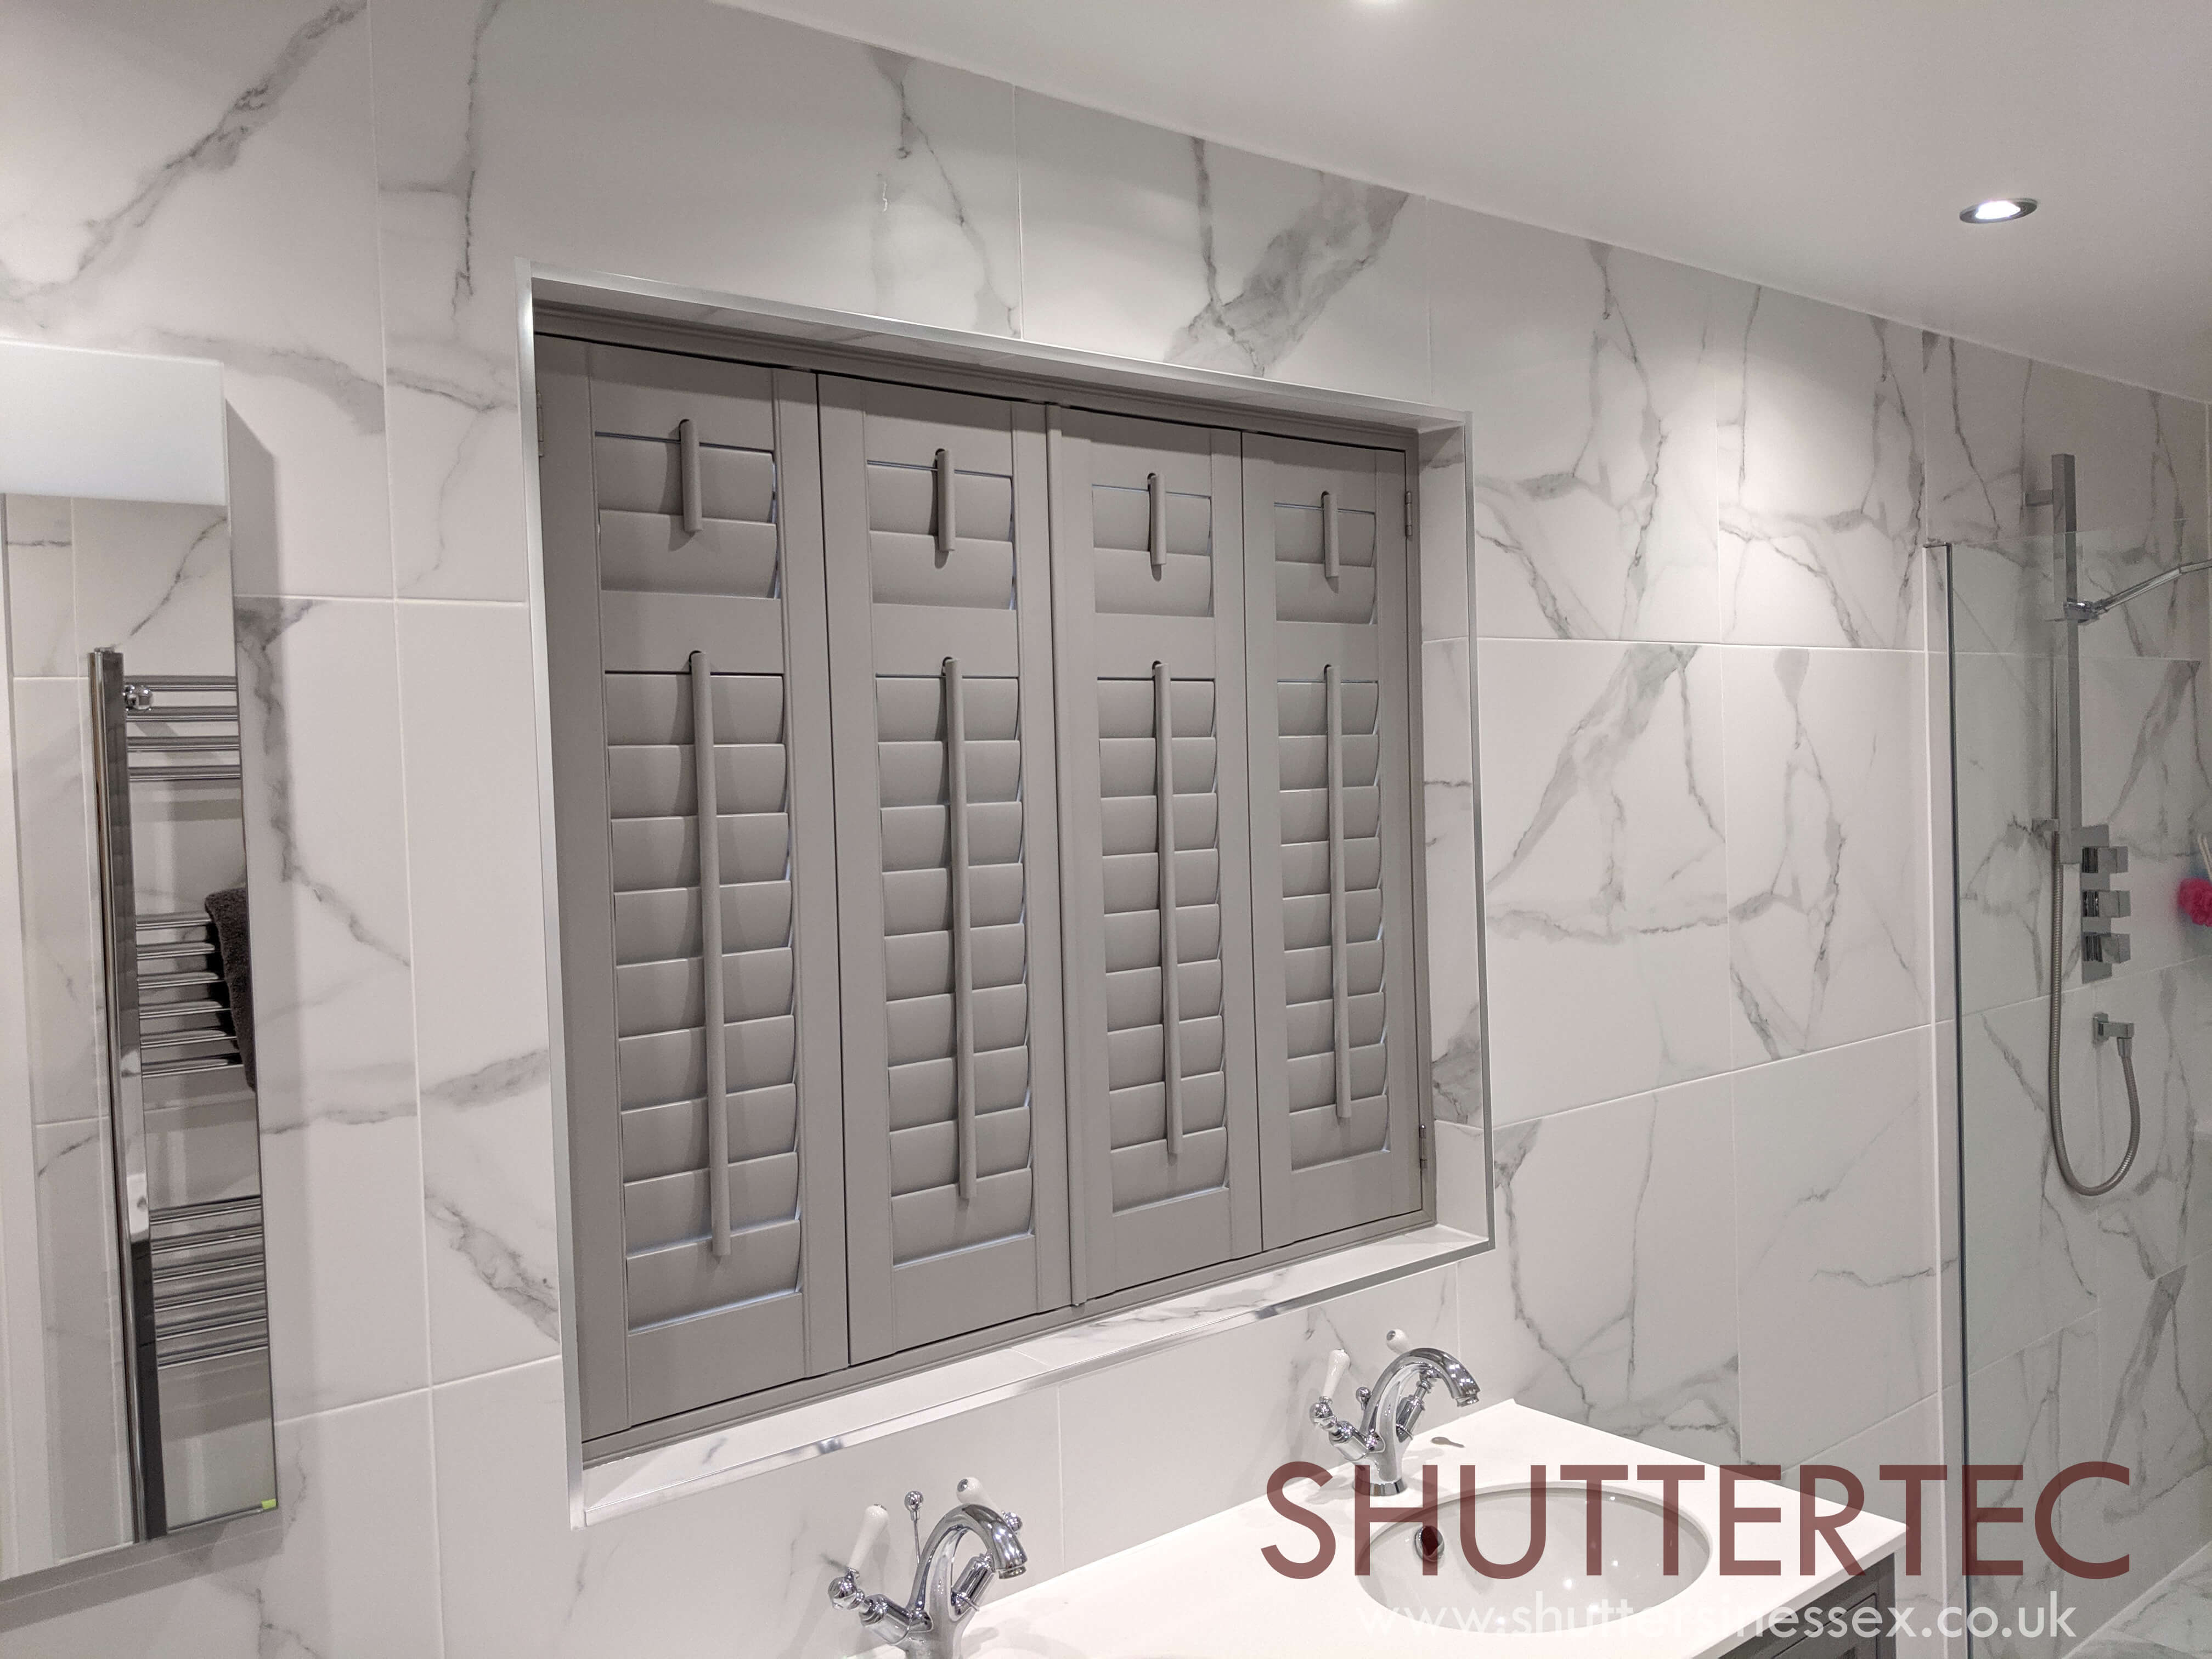 image of closed shutters in a bathroom for blog by Shuttertec on whether shutters are warmer than curtains